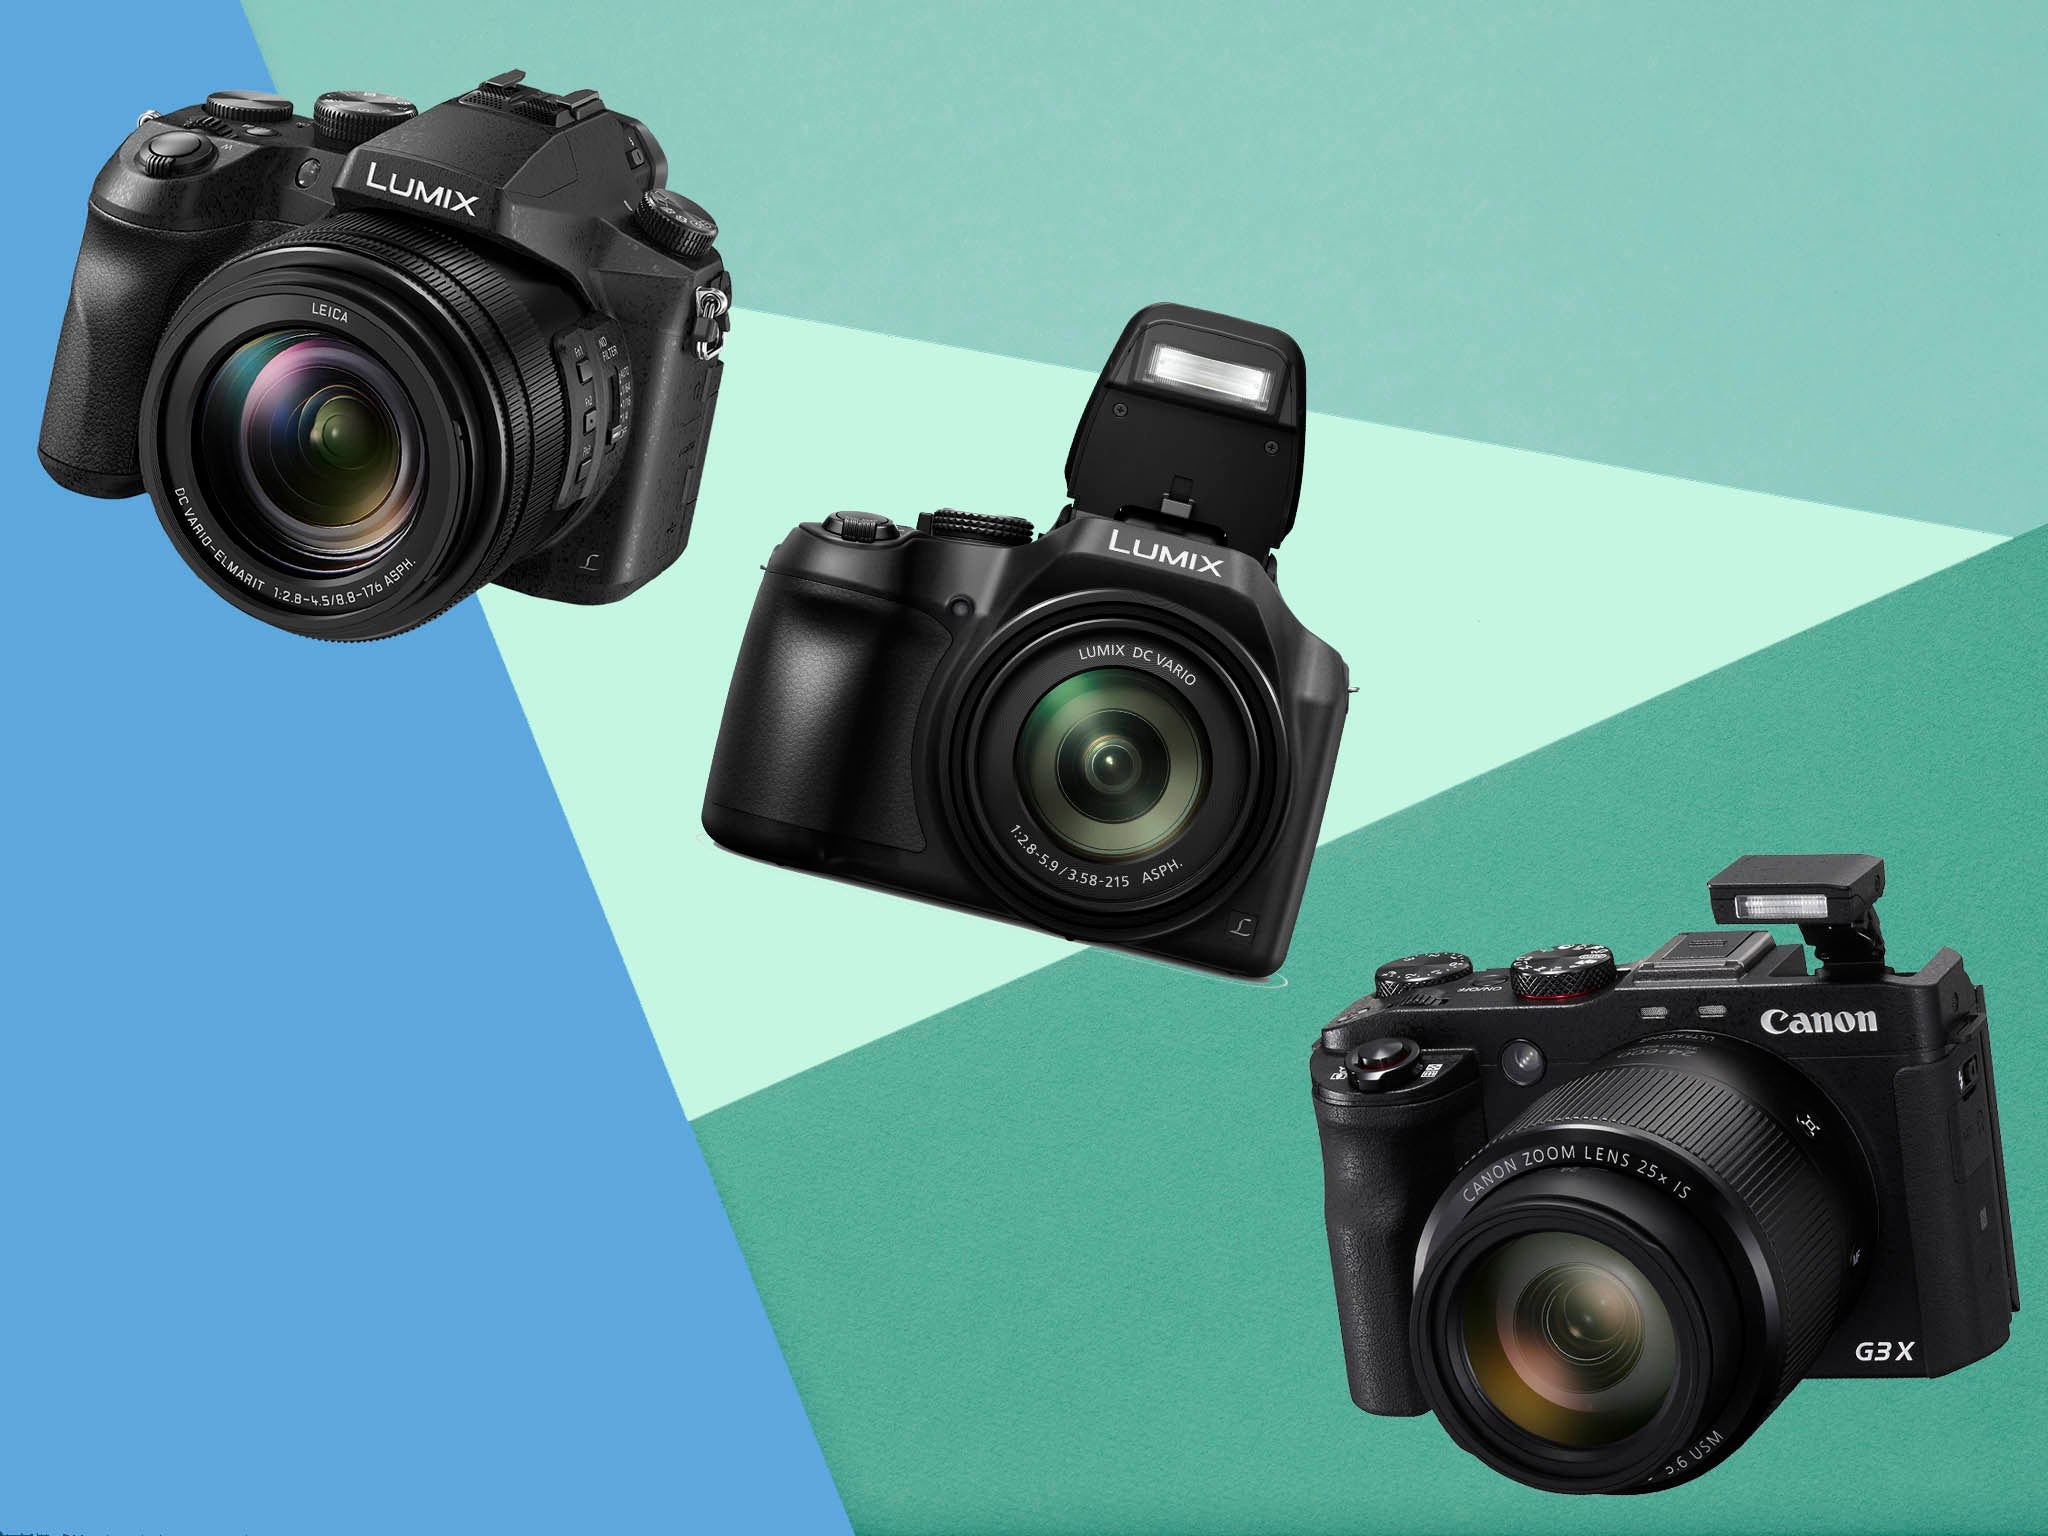 Best bridge cameras: From beginners to shooting wildlife